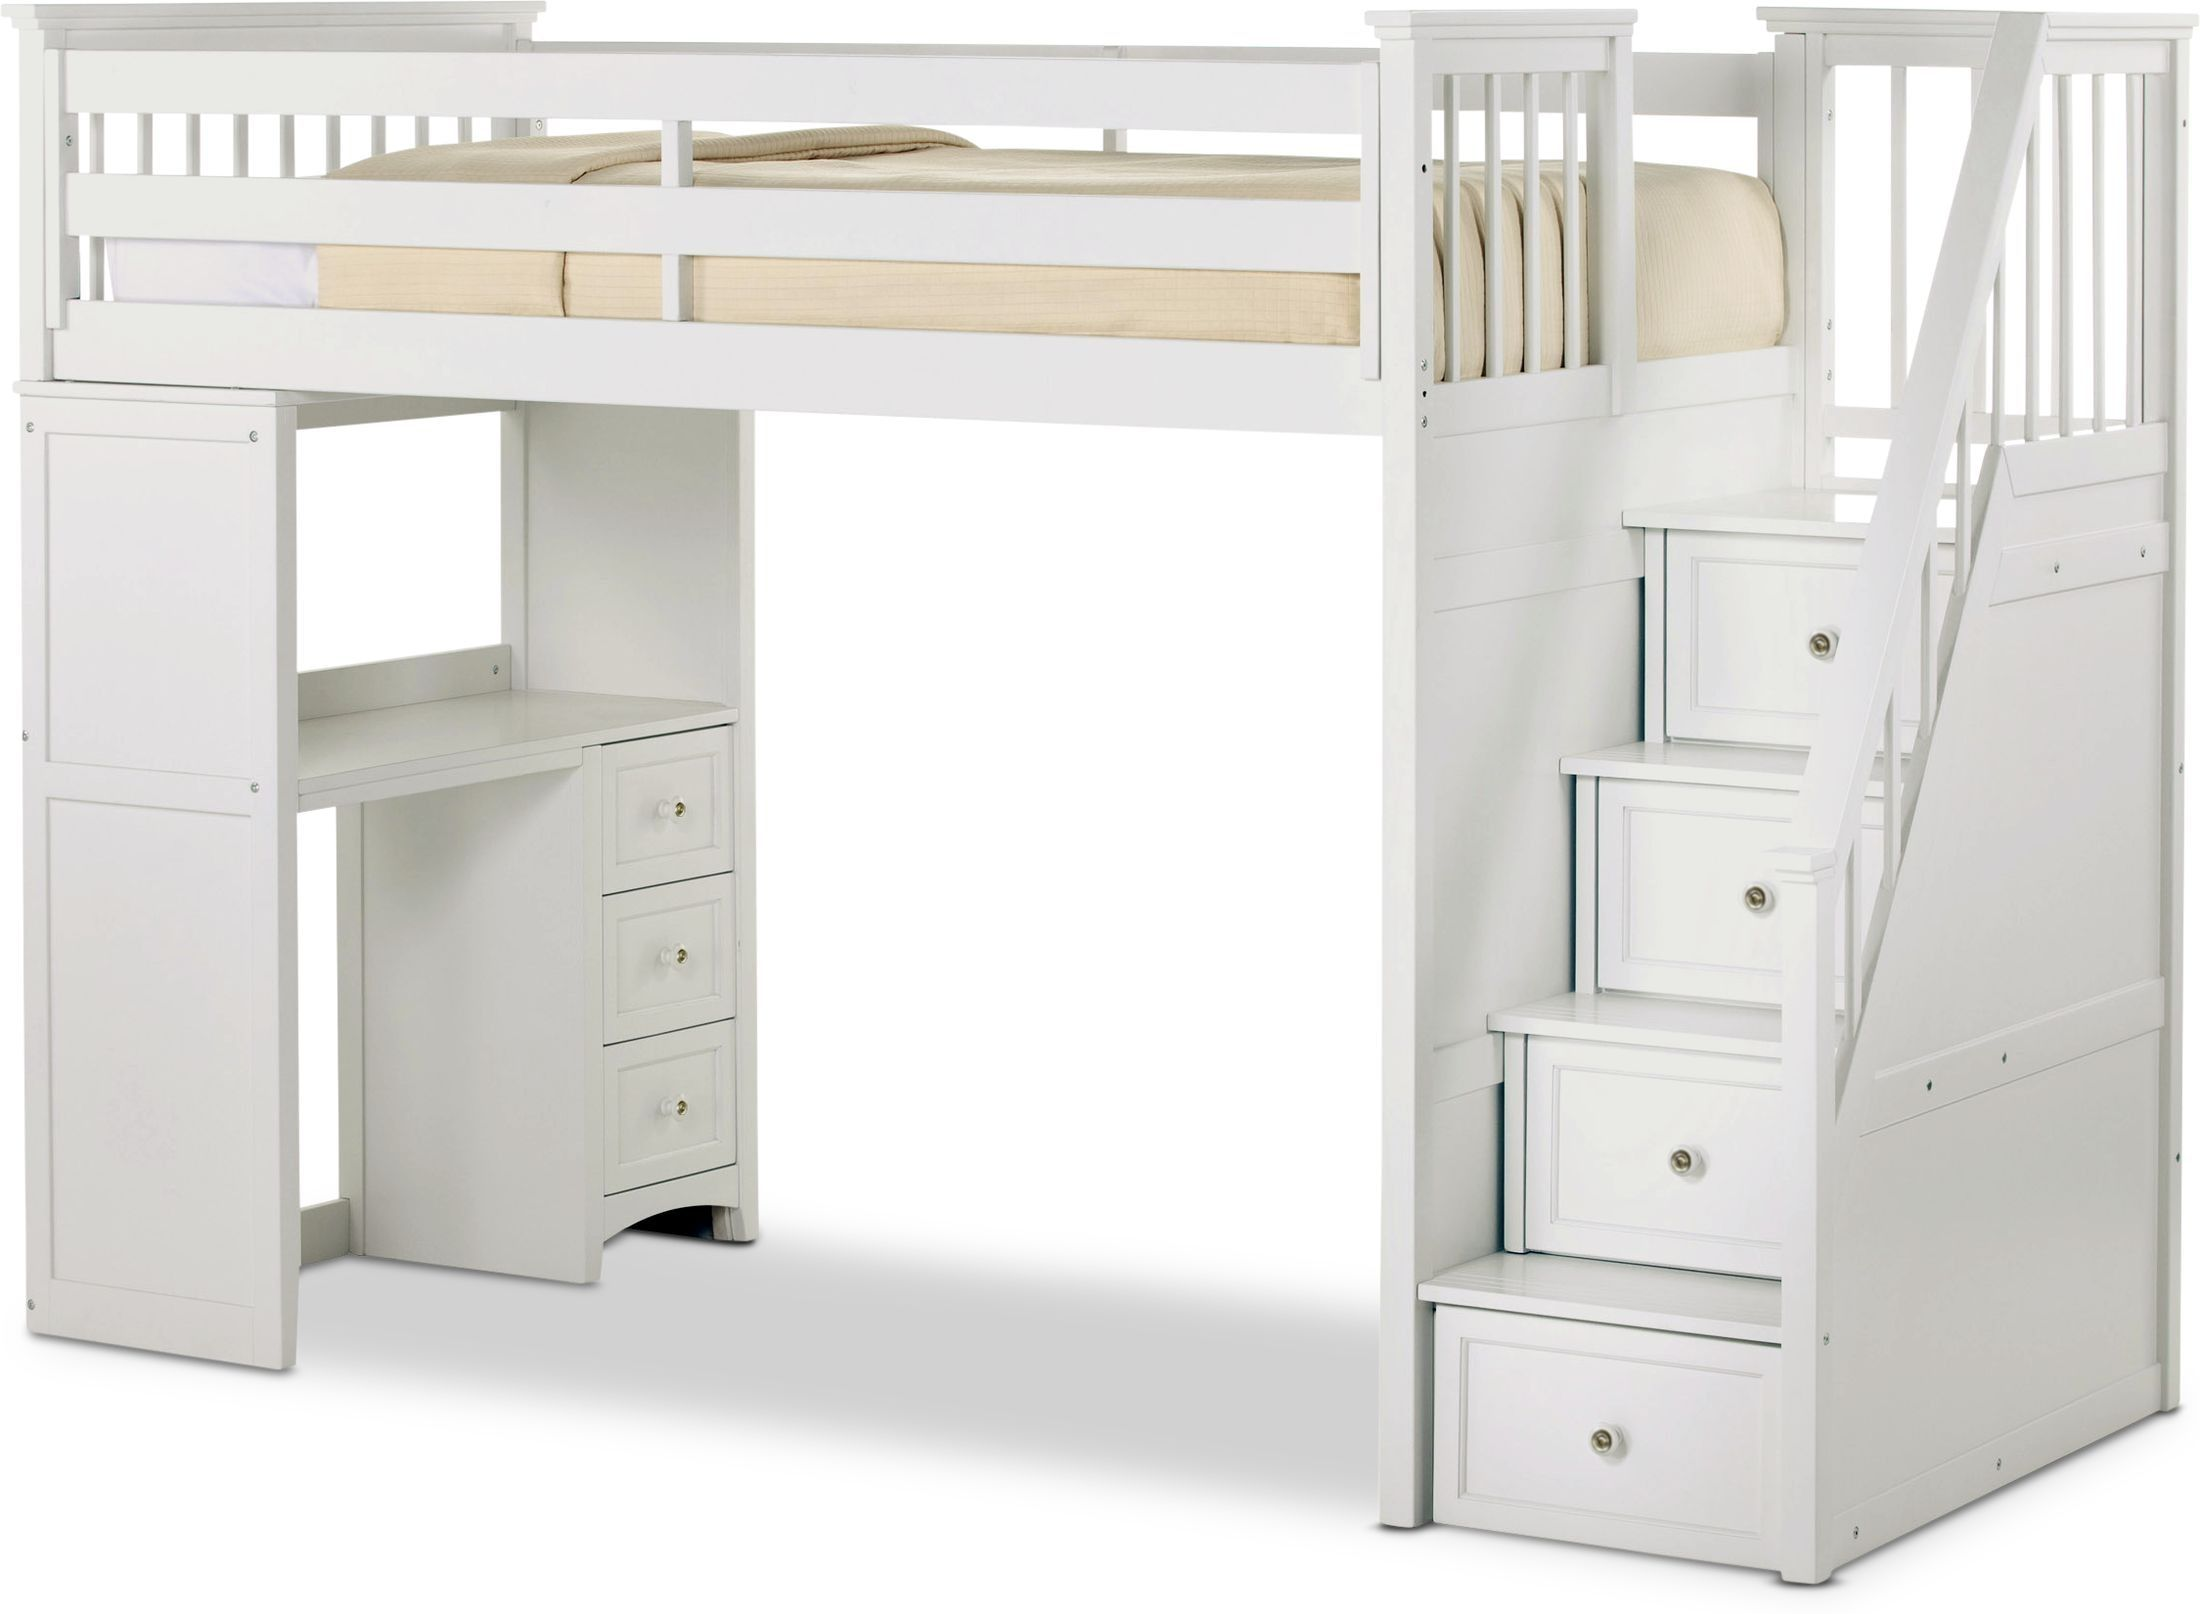 Flynn Loft Bed With Storage Stairs And Desk Value City Furniture And Mattresses Bunk Beds With Stairs White Loft Bed Bunk Bed Designs Loft beds with storage and desk